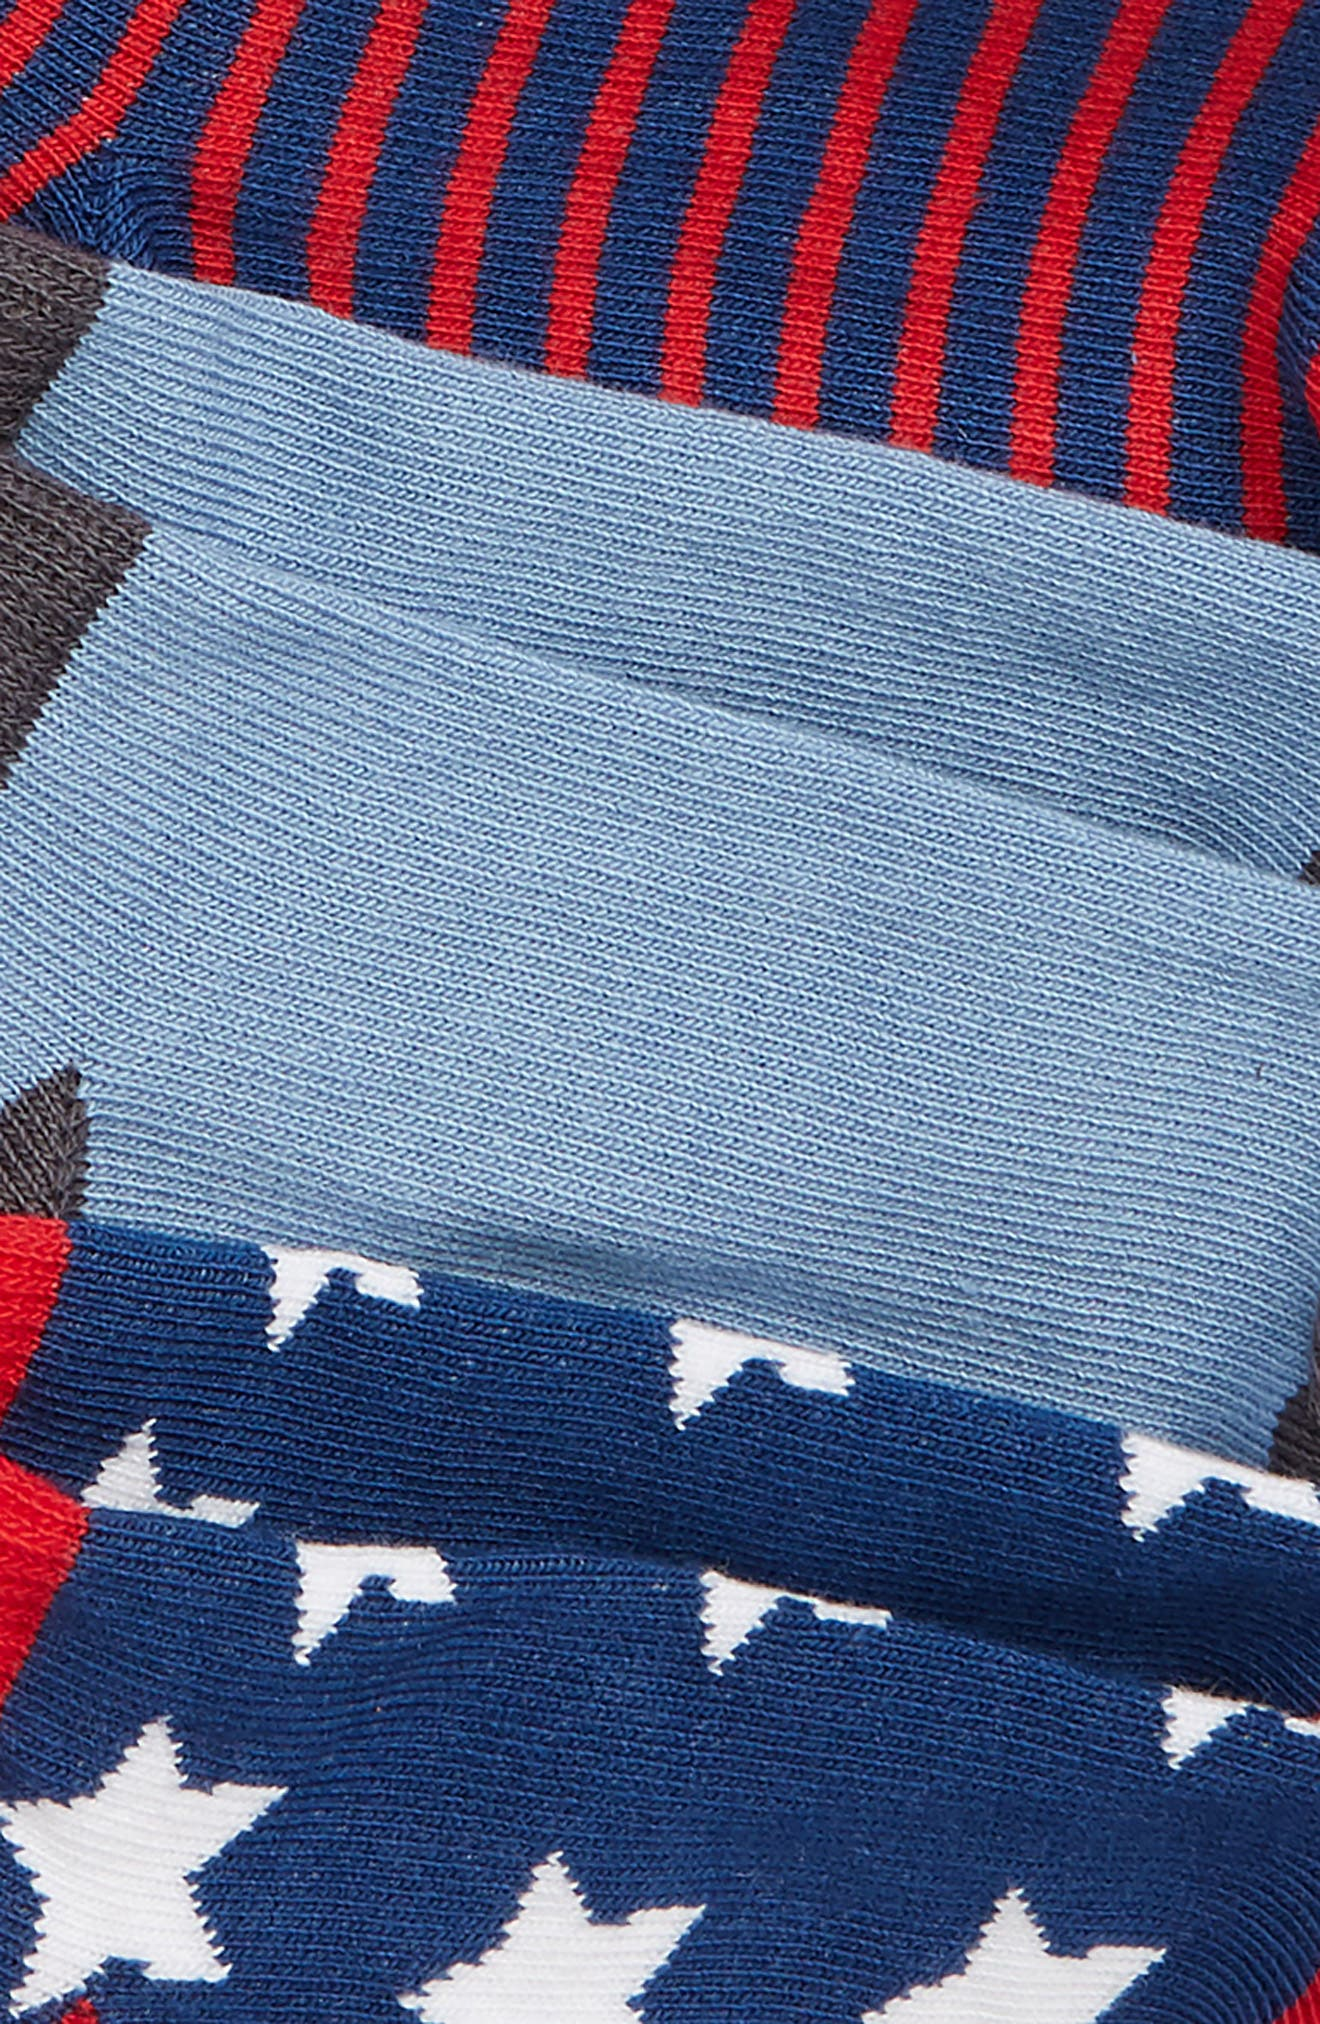 6-Pack Stars and Stripes Low Cut Socks,                             Alternate thumbnail 2, color,                             NAVY DENIM MULTI